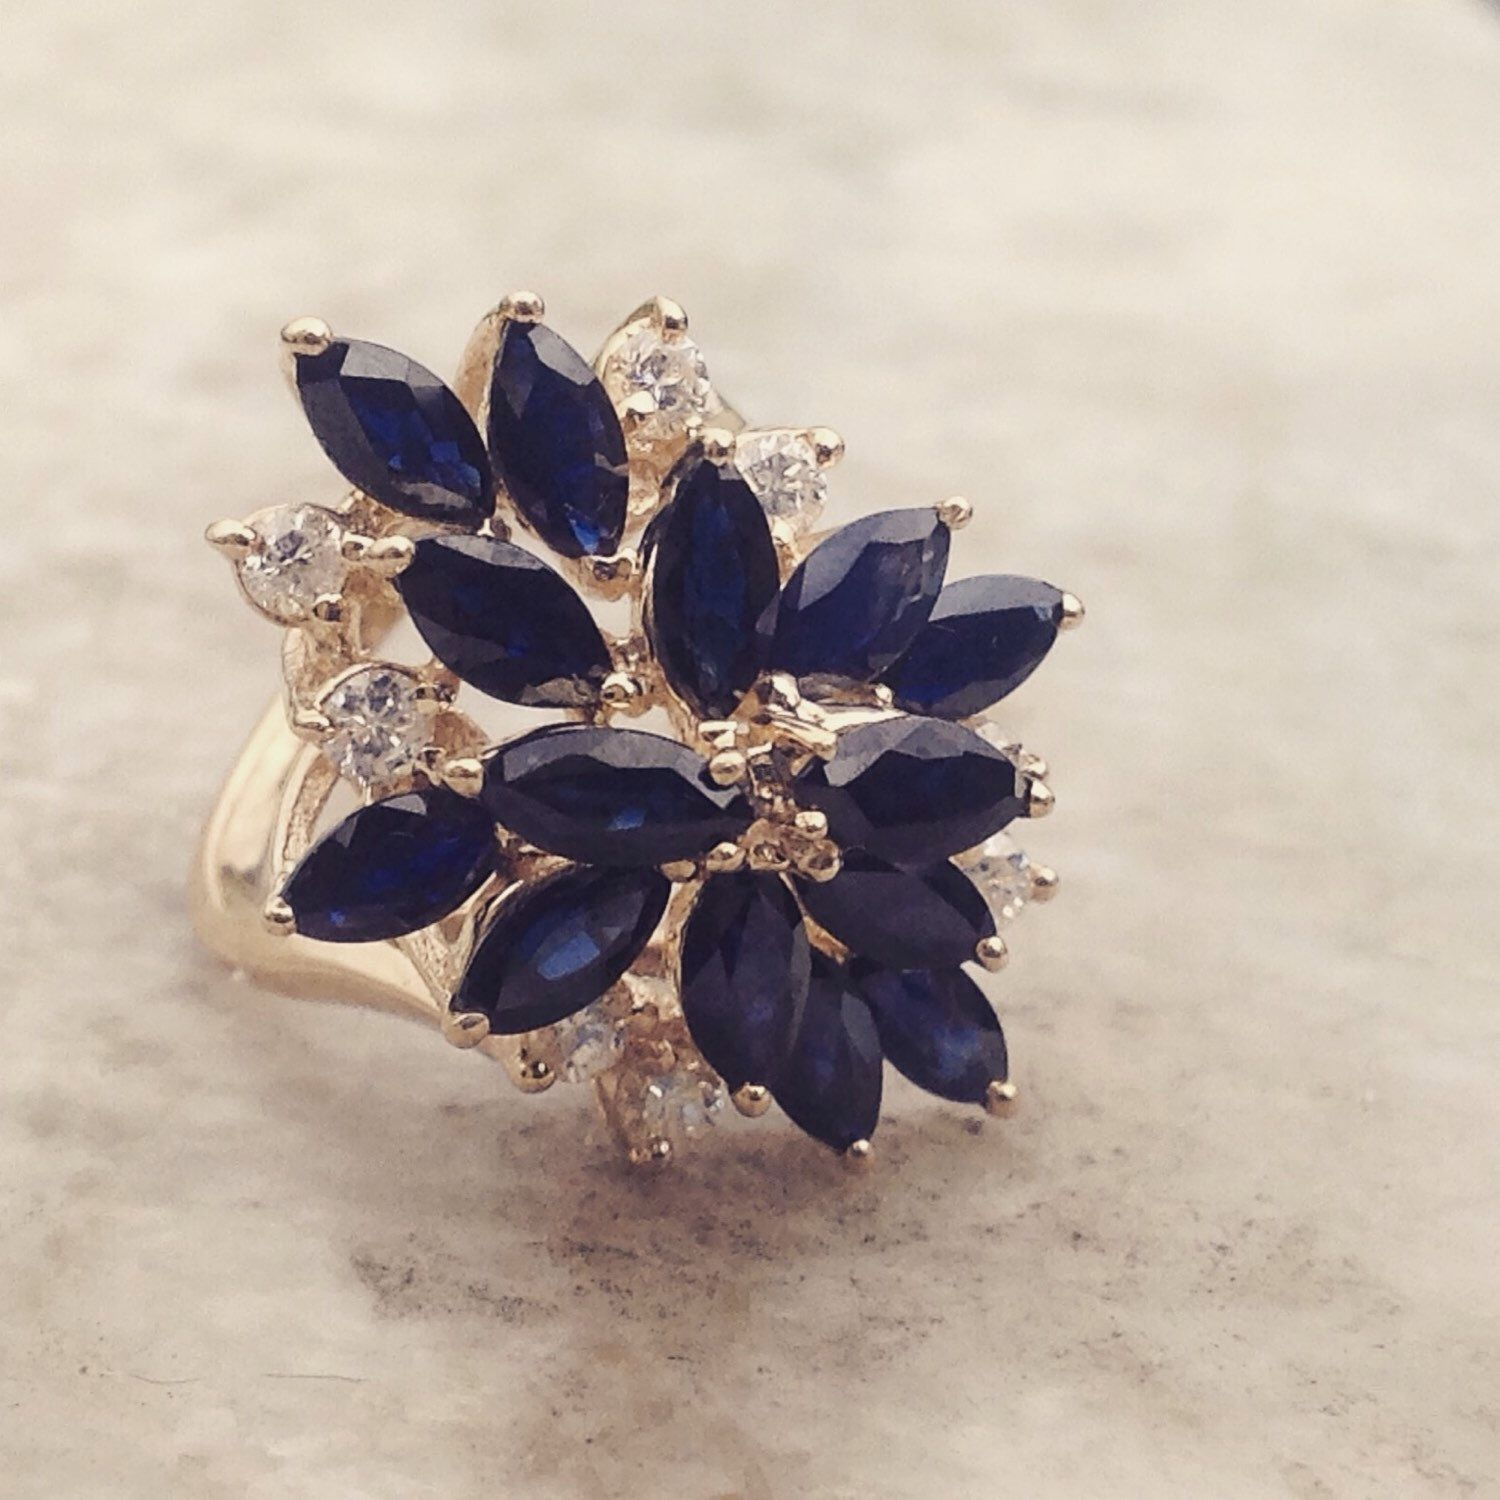 Just listed this vintage Sapphire beauty...it's in amazing condition!